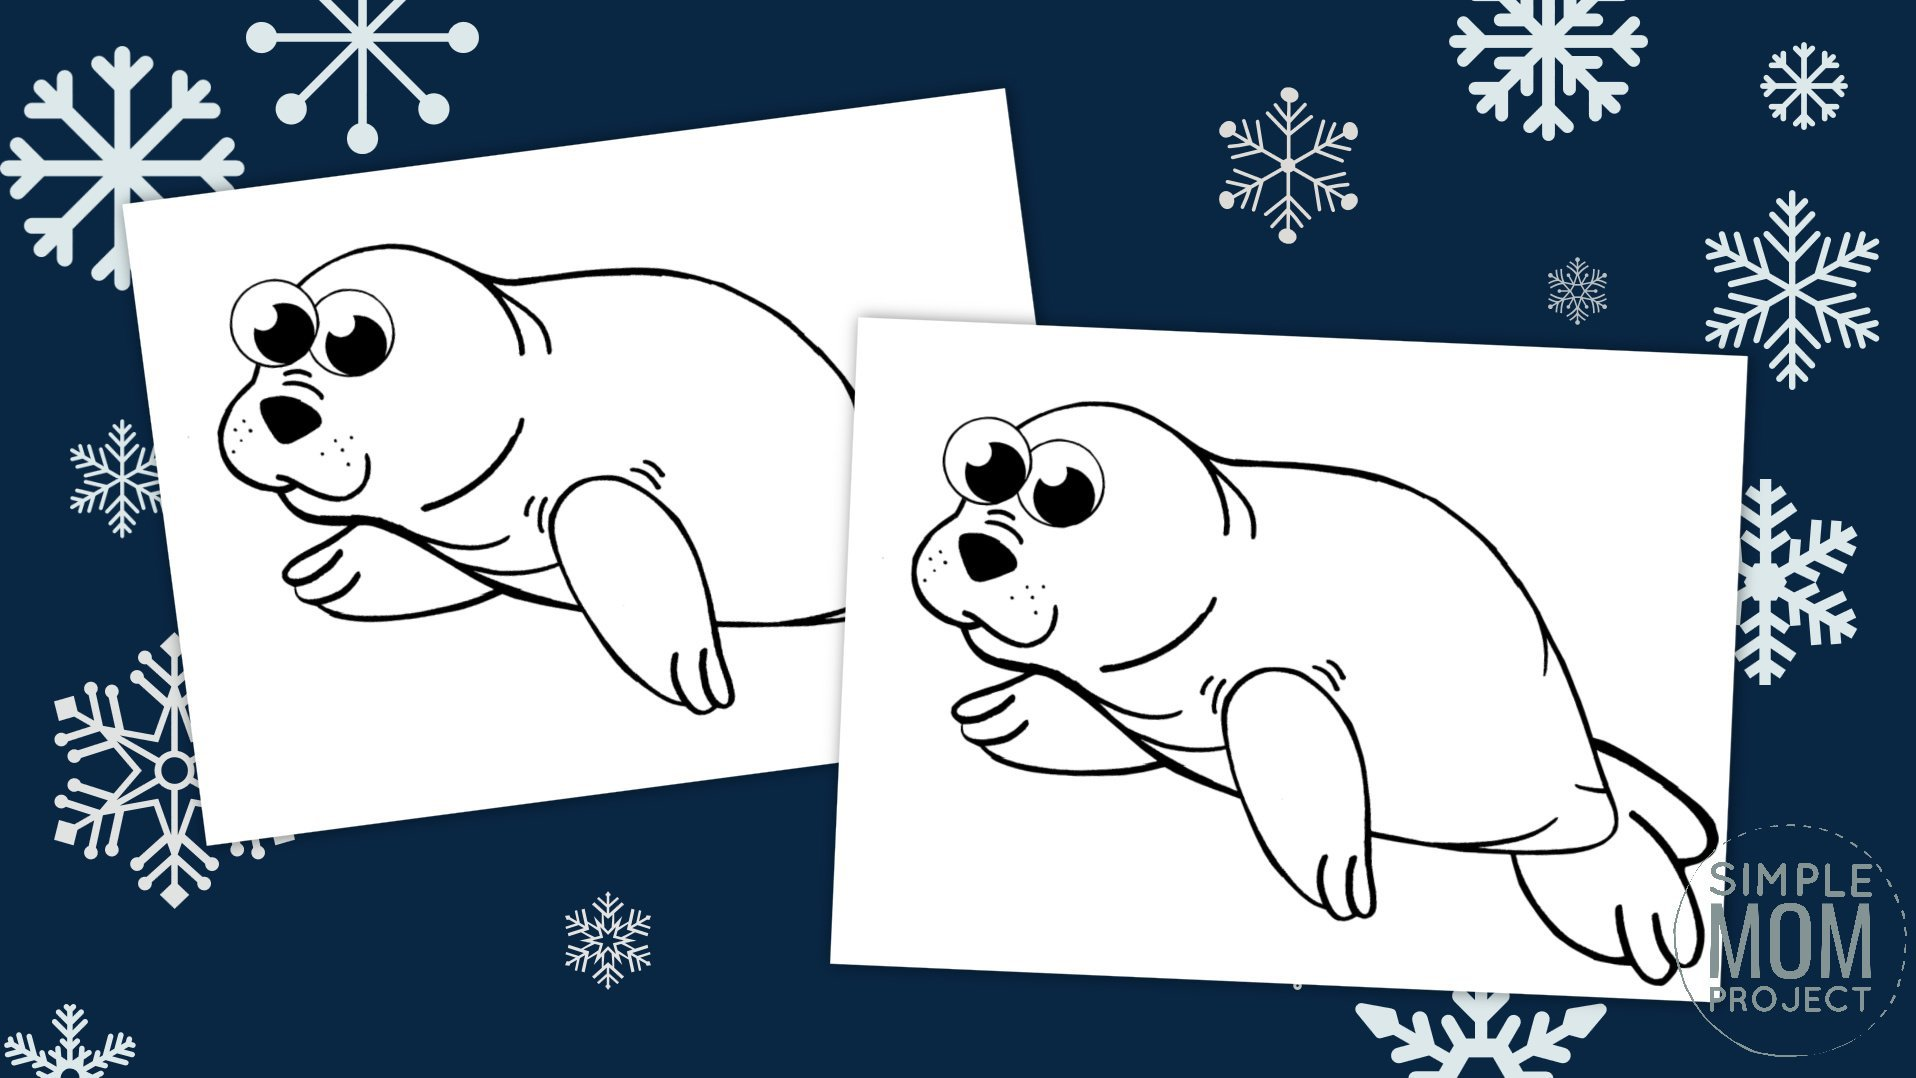 Free Printable Simple Arctic Animal Harp Seal Coloring Page for kids preschoolers and toddlers